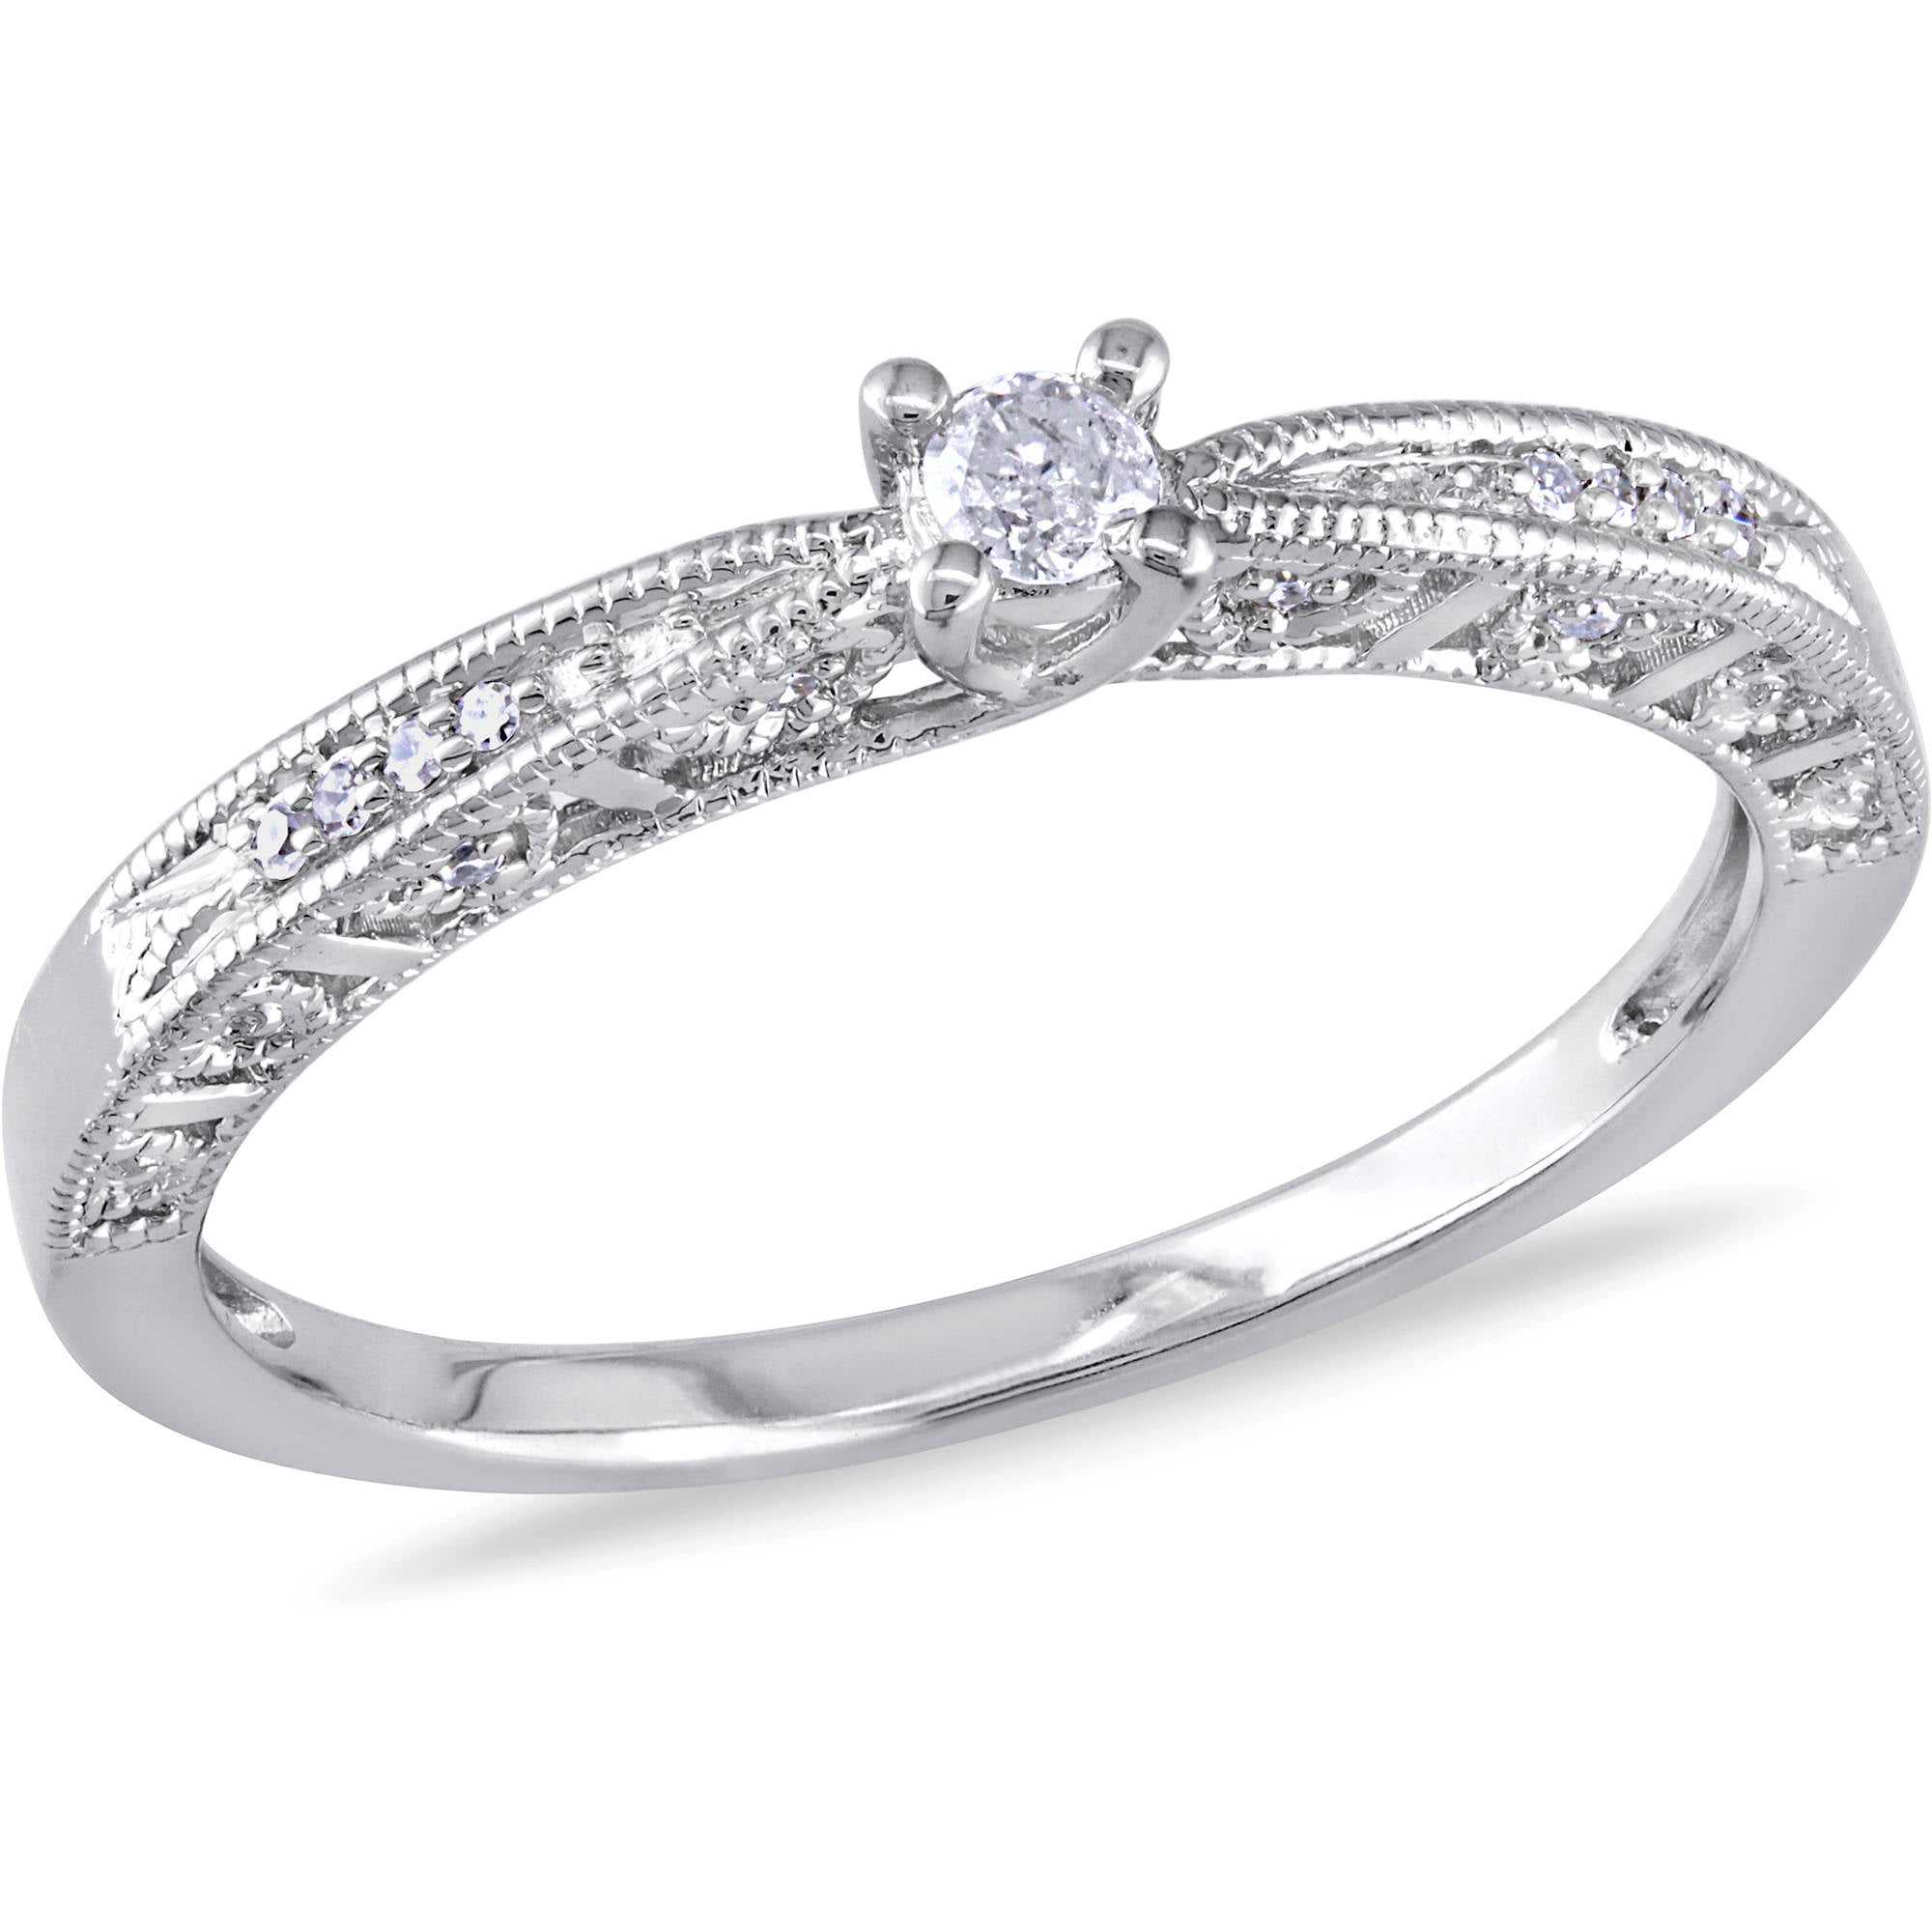 miabella 110 carat tw diamond sterling silver engagement ring walmartcom - Sterling Silver Diamond Wedding Rings